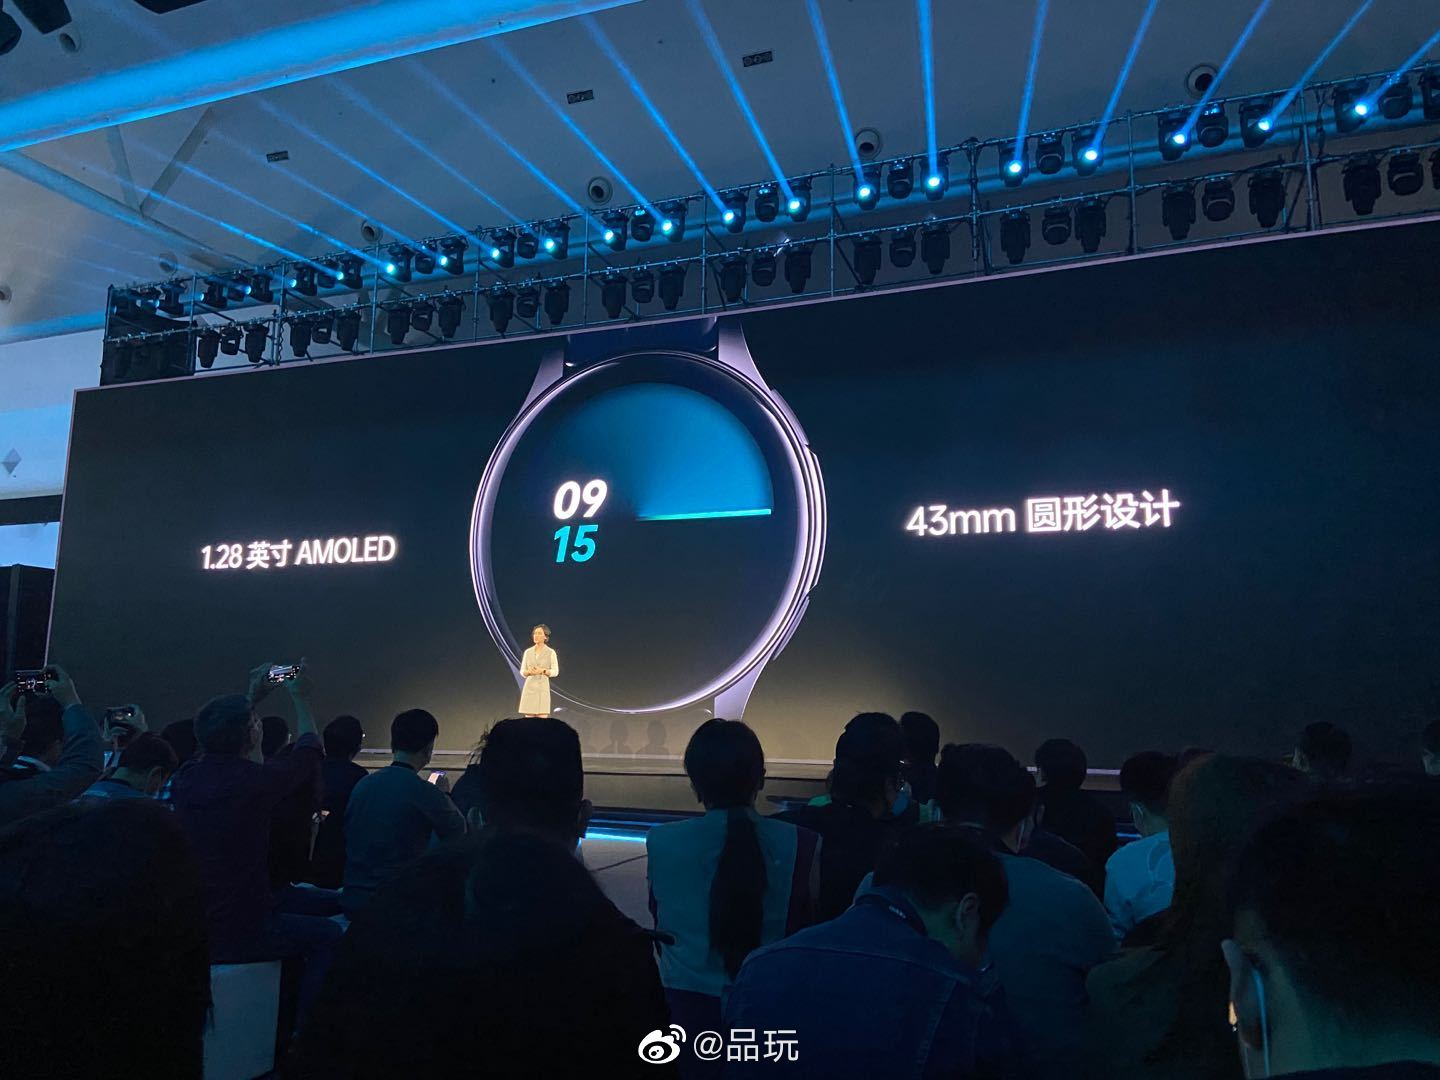 OPPO Watch RX搭载1.28英寸AMOLED屏幕,采用43mm圆形设计